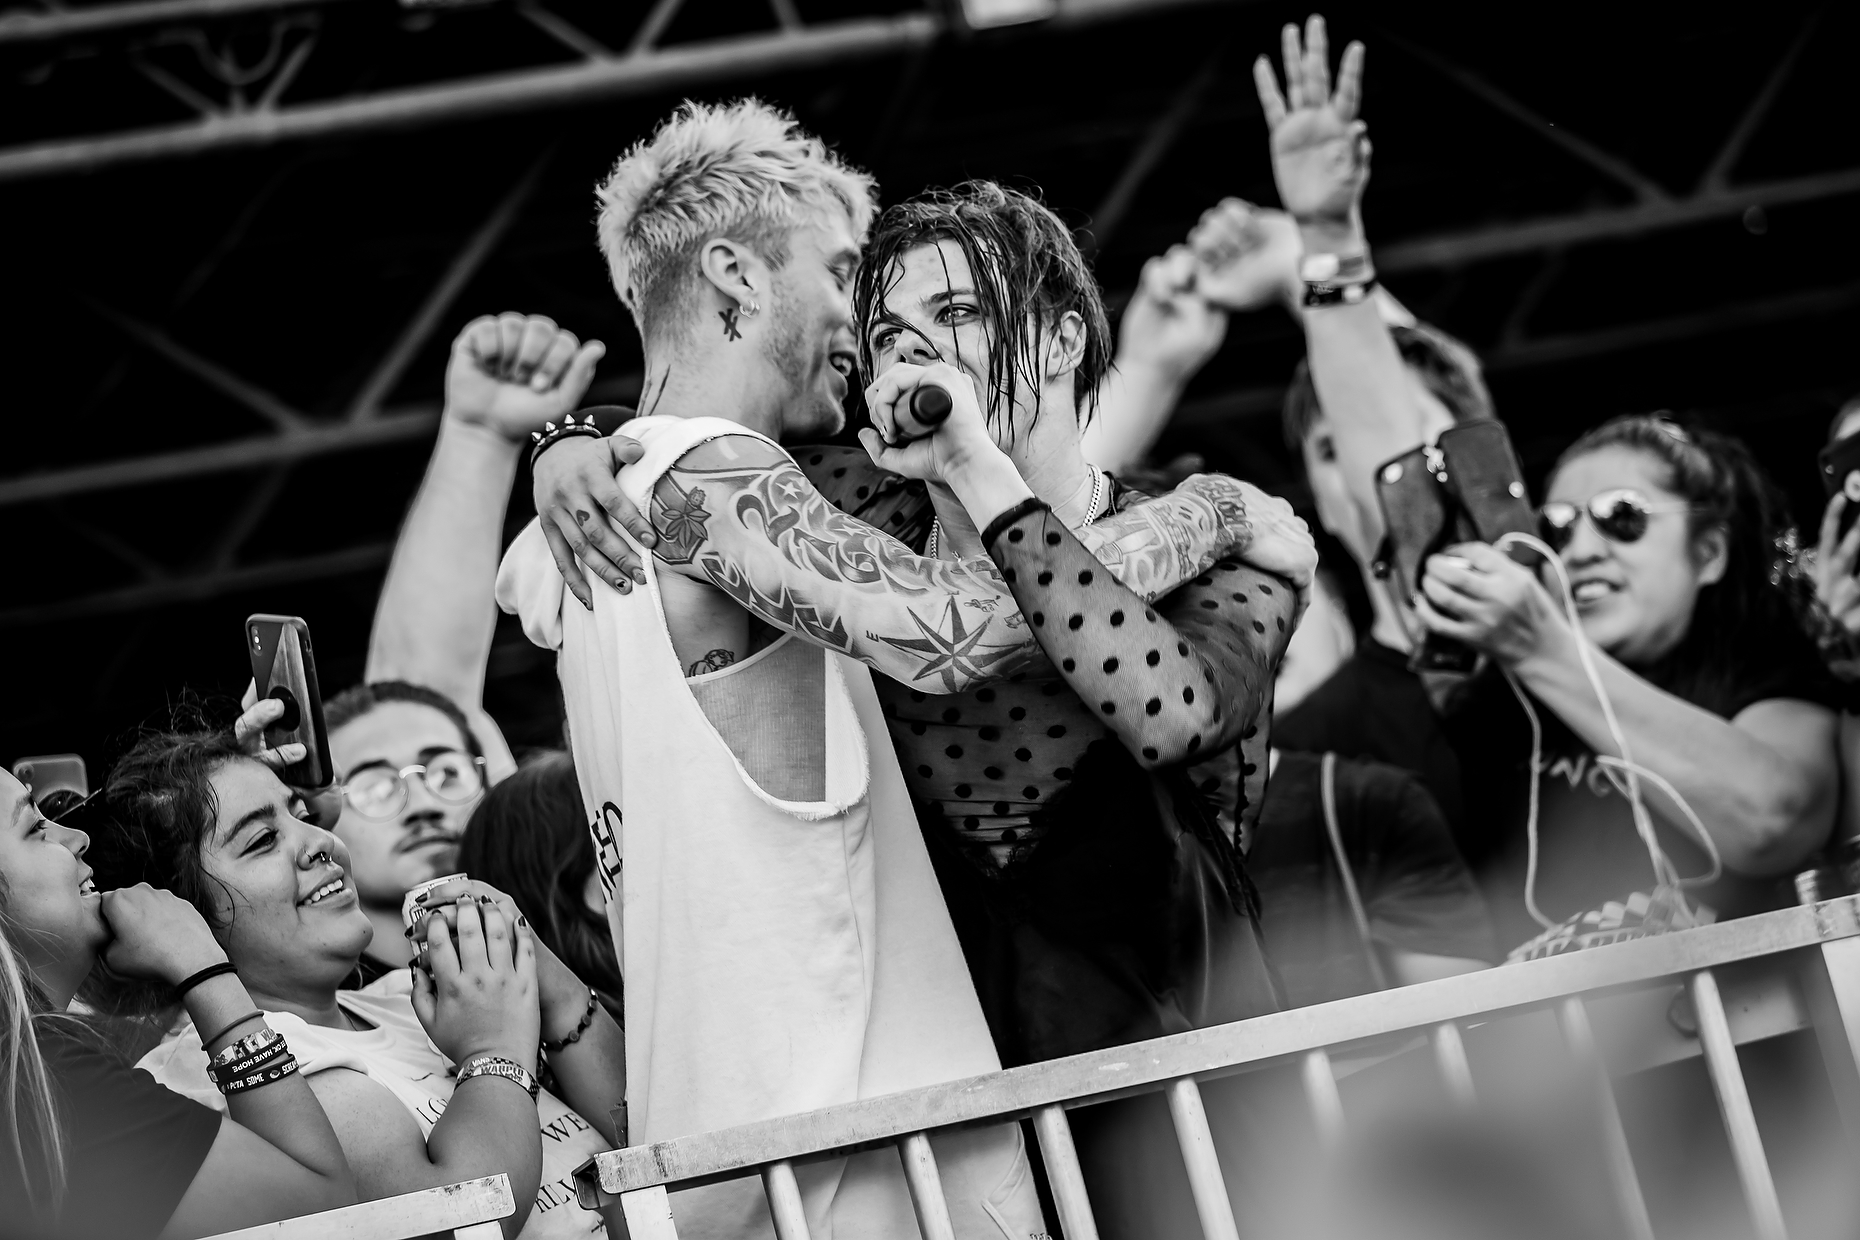 MACHINE GUN KELLY + YUNGBLUD